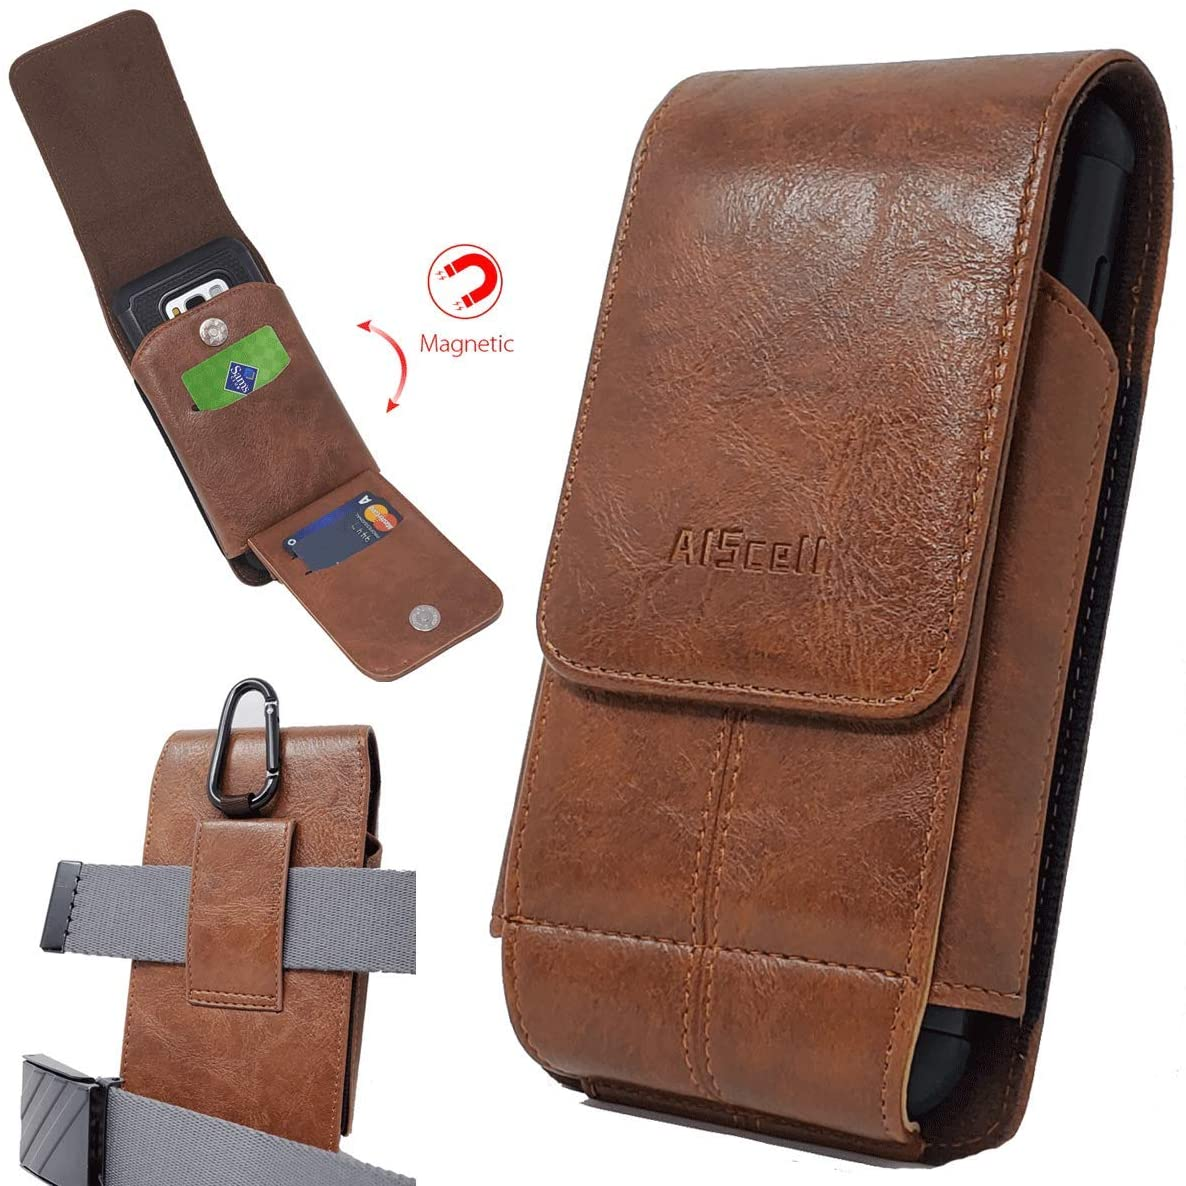 AISCELL Wallet Case Vertical Brown Leather Sleeve Flip Pouch Belt Waist Holster with Carabiner for iPhone 11, 11 Pro Max,XS Max,XR, 8 Plus, 7 Plus, 6S Plus, Already with Protective Hybrid Cover on